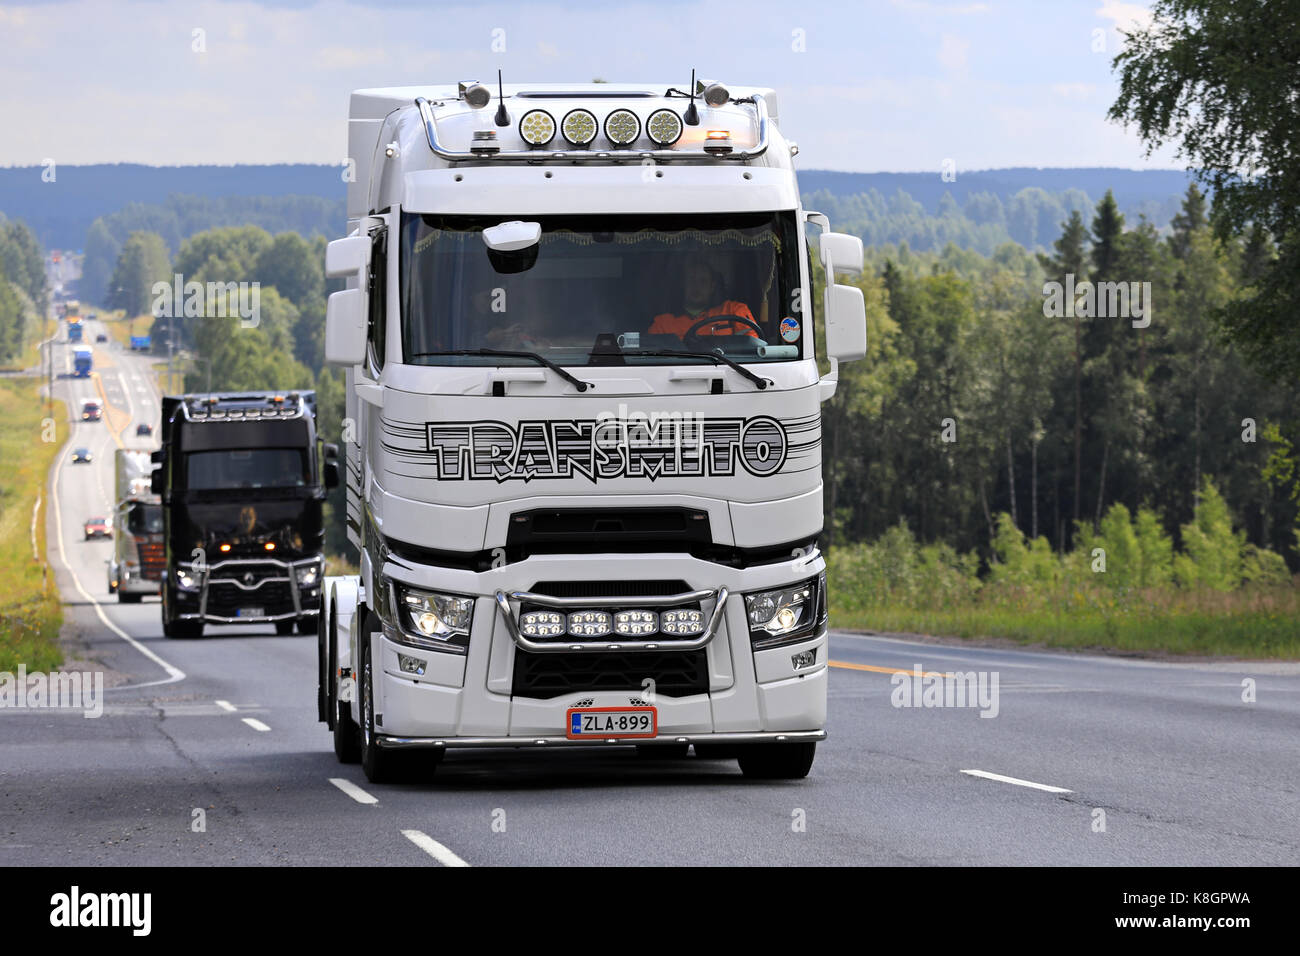 IKAALINEN, FINLAND - AUGUST 10, 2017: Black and white customized Renault Trucks T semi tractor with light accessories - Stock Image